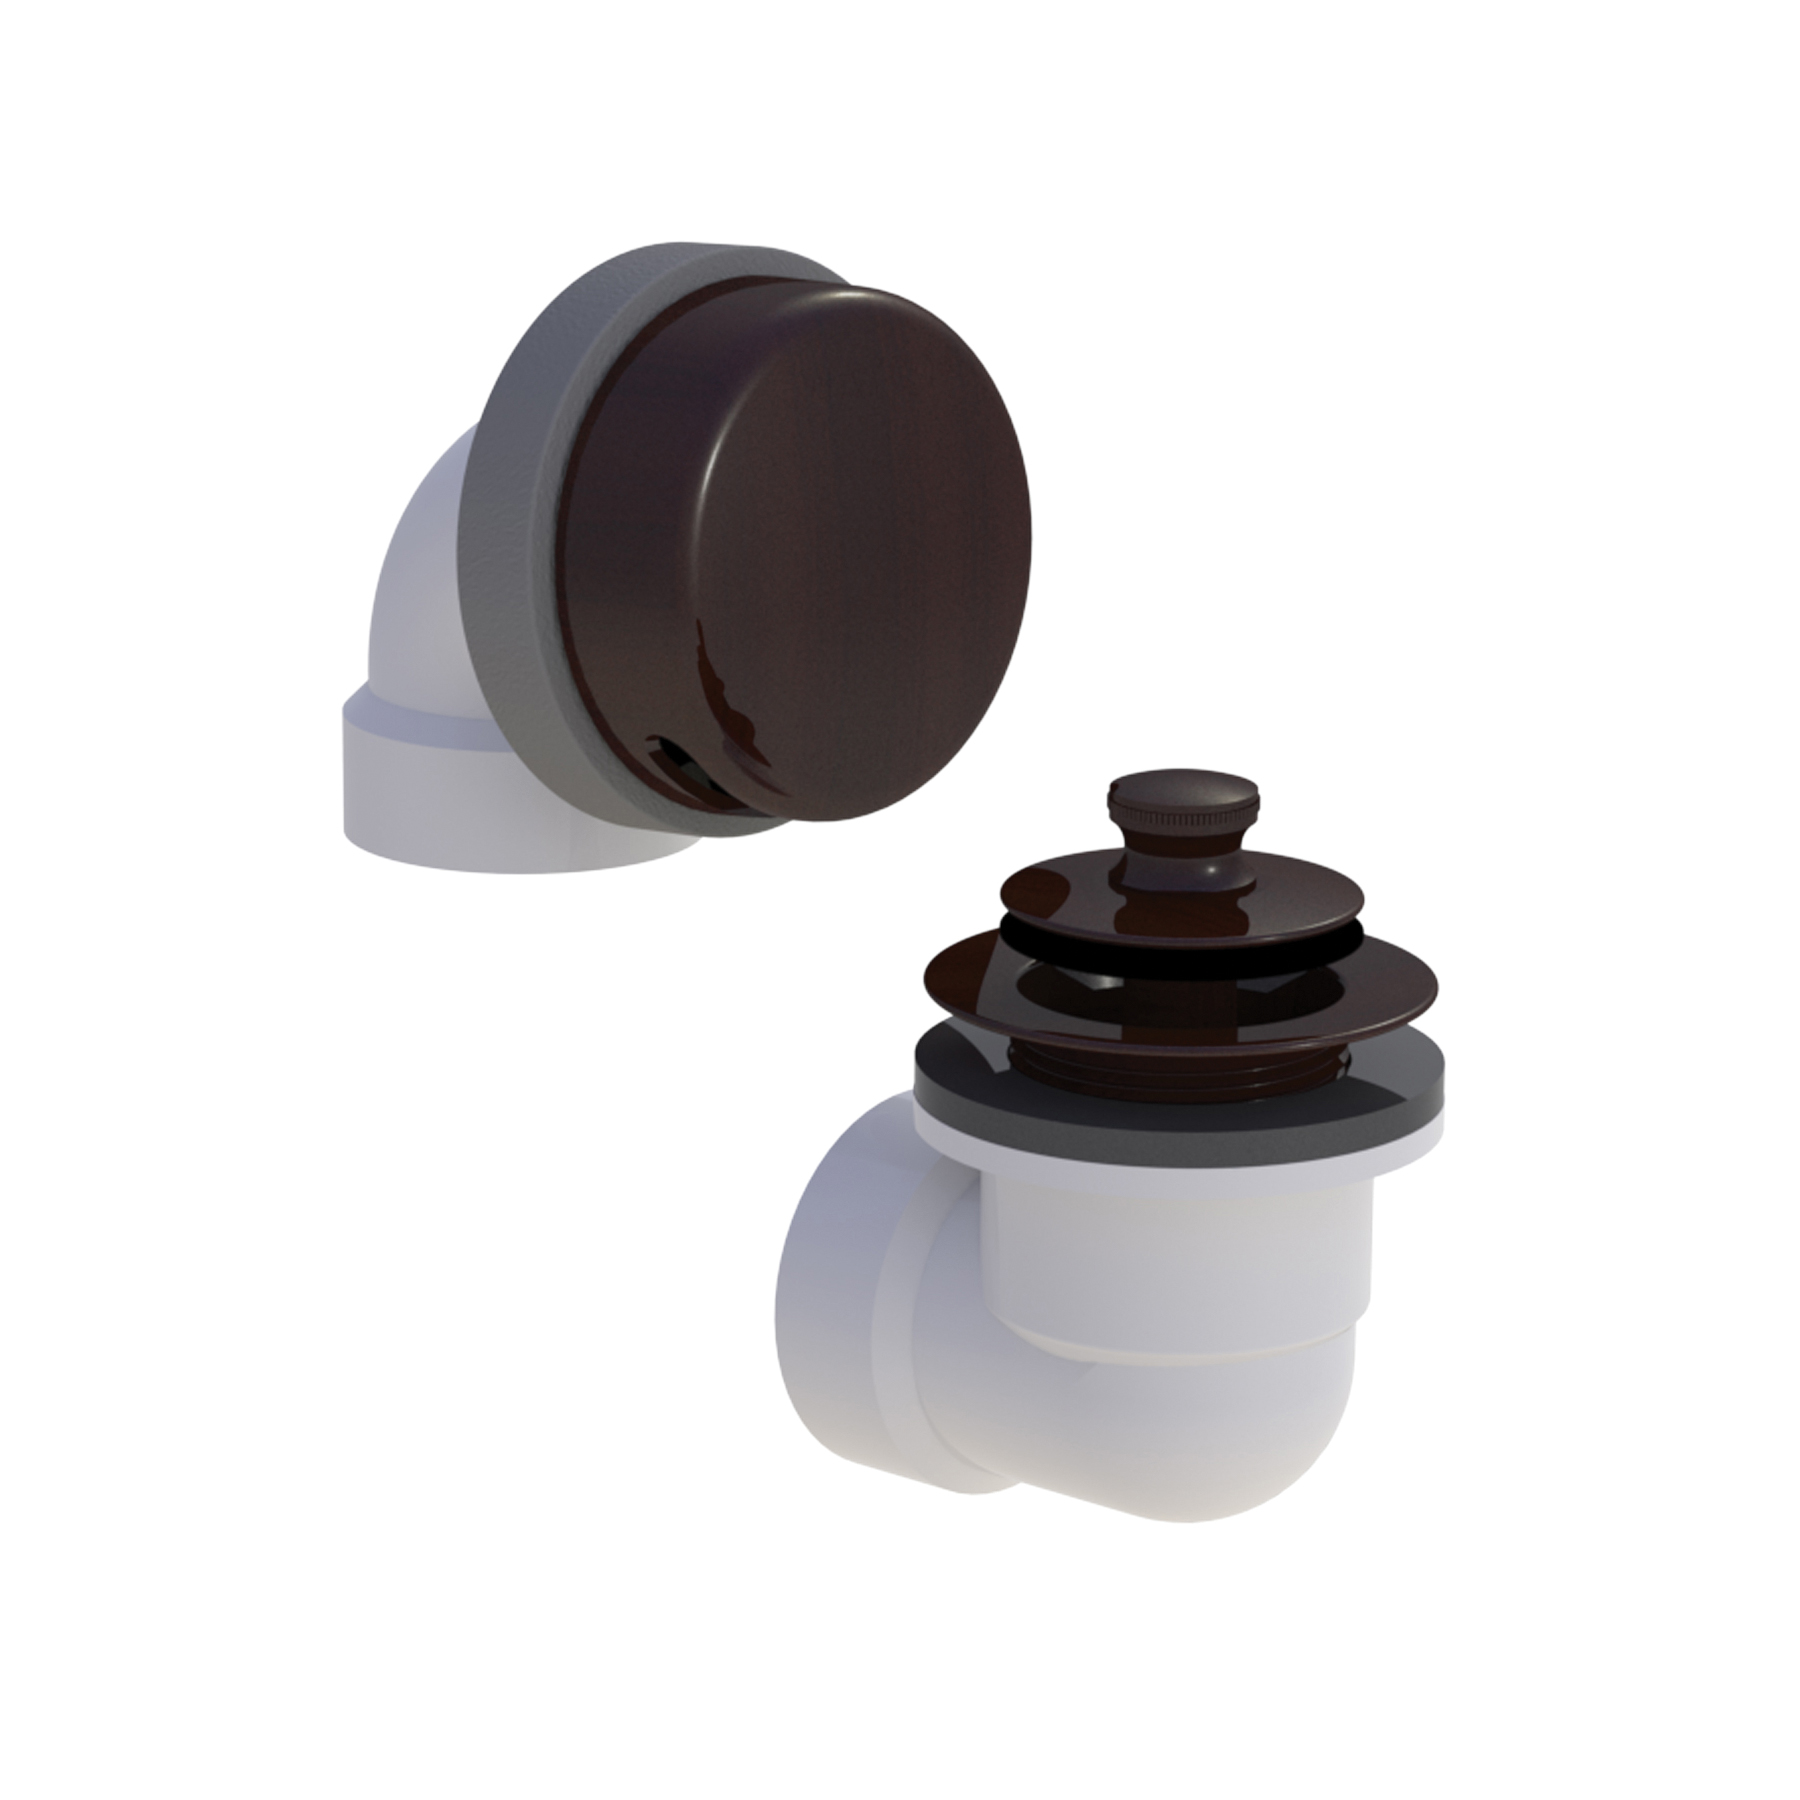 Watco® 901-LT-PVC-BZ Innovator® 901 Bath Waste Half Kit With Oil Rubbed Bronze Lift and Turn Stopper, PVC